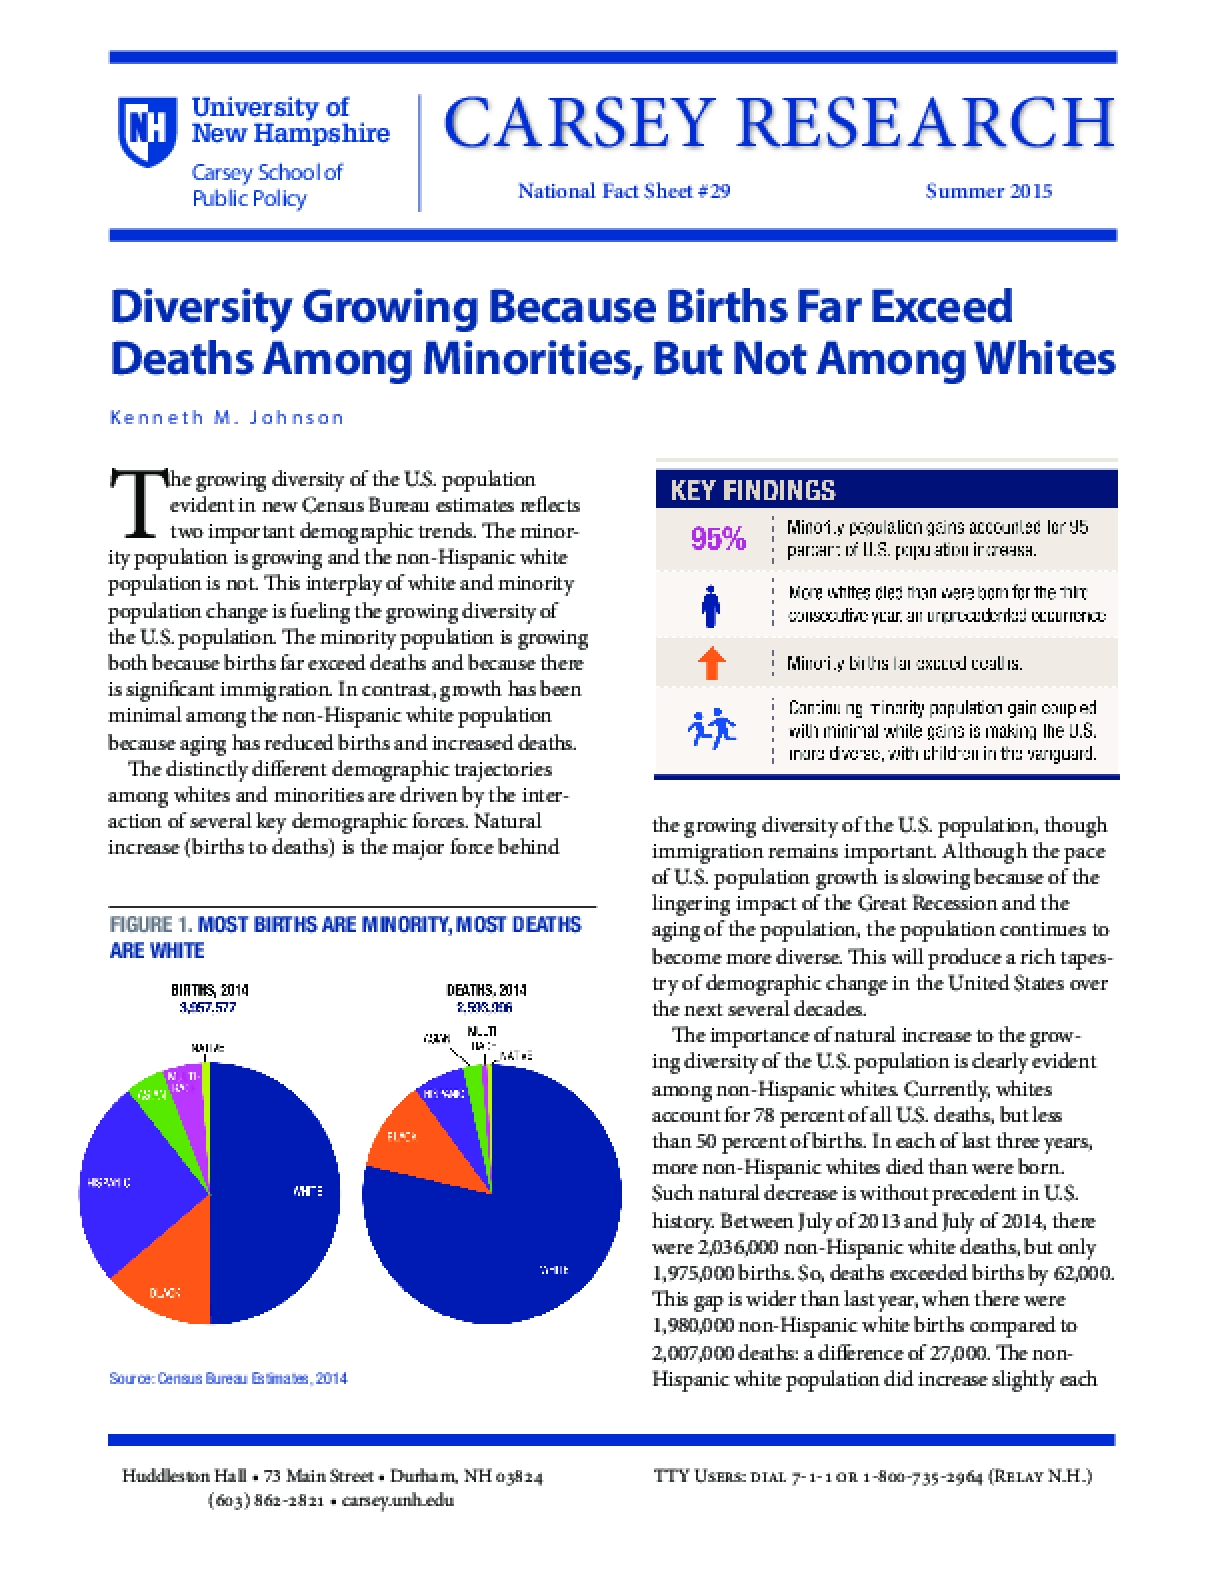 Diversity Growing Because Births Far Exceed Deaths Among Minorities, But Not Among Whites